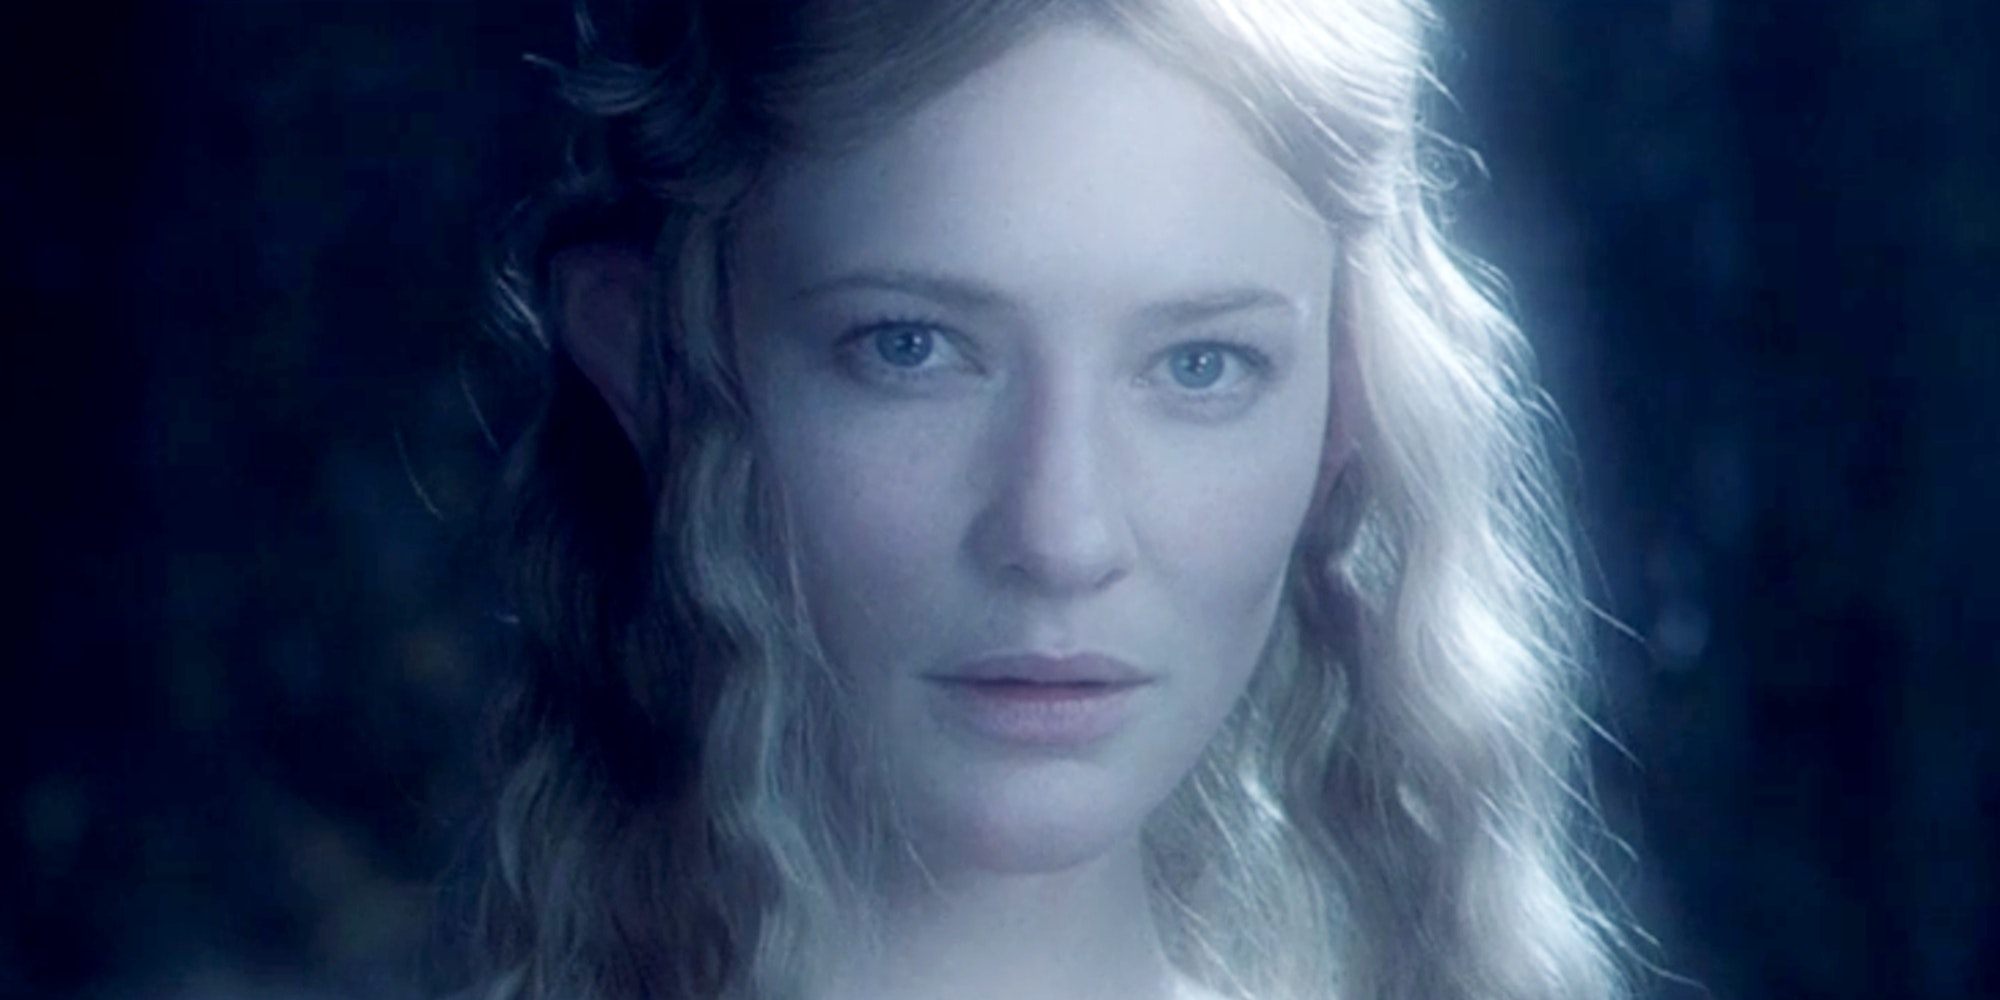 the elf galadriel in lord of the rings fellowship of the rings